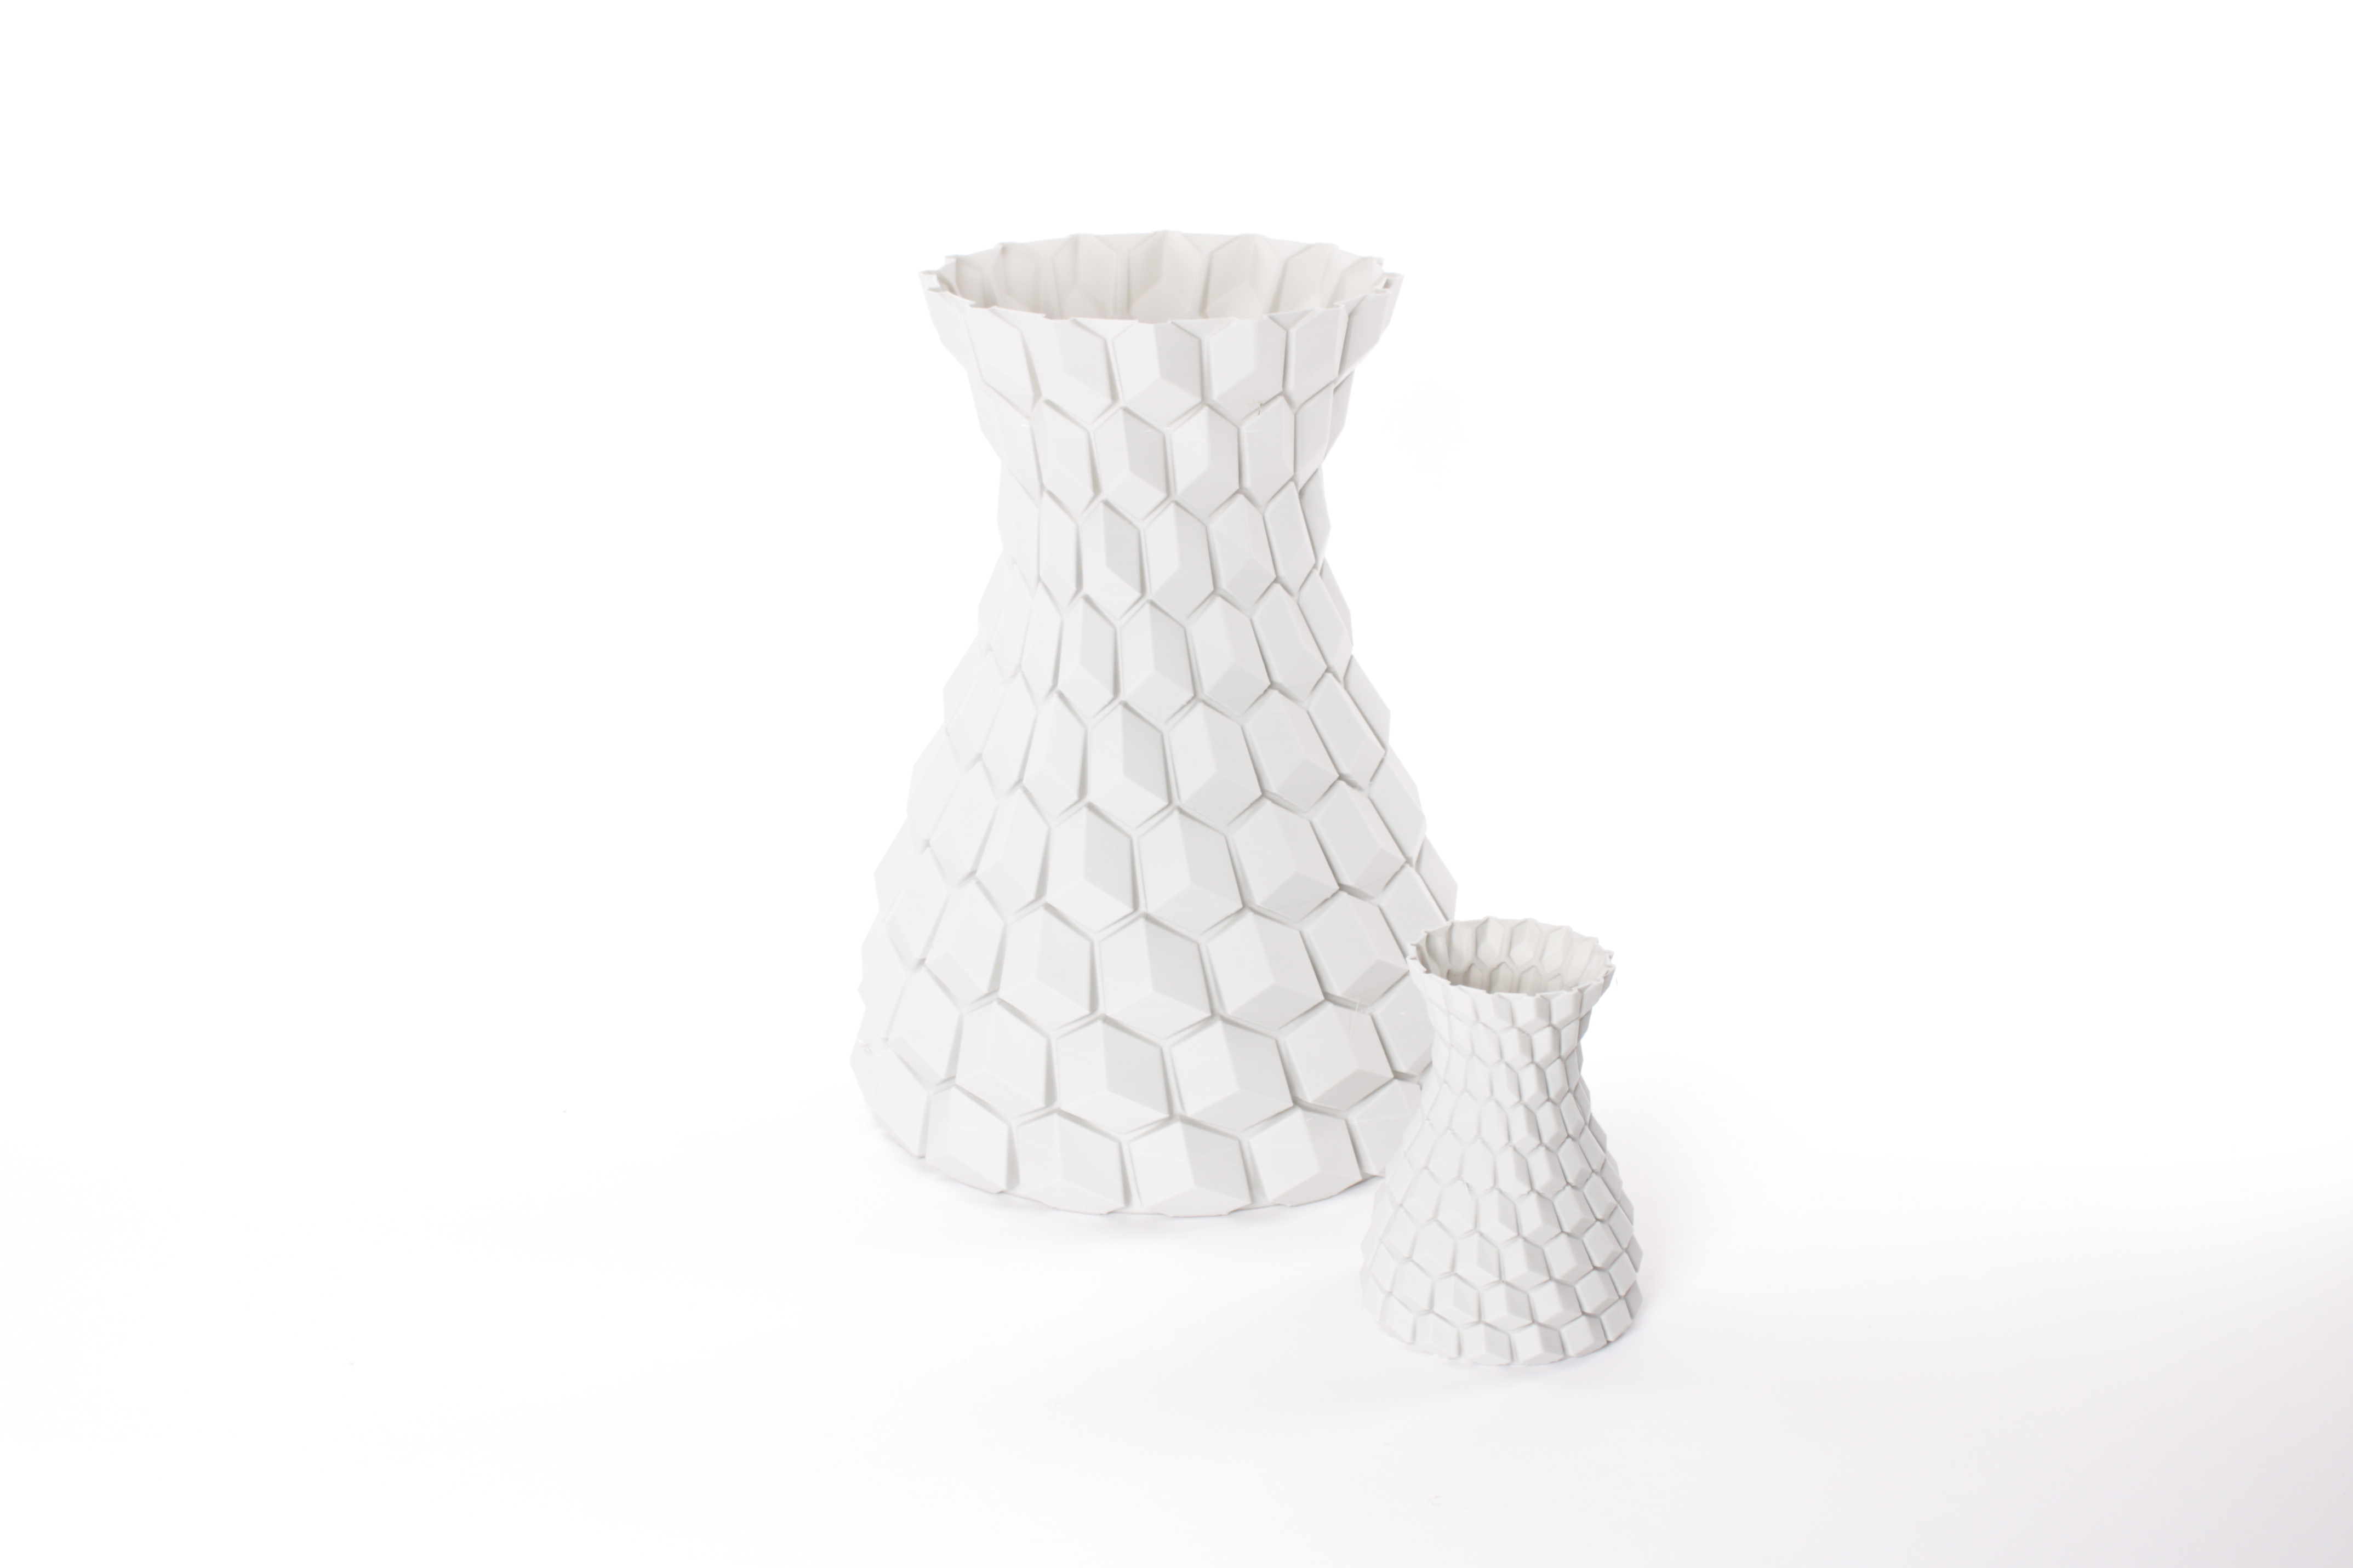 StoneFil - HoneyComb Concrete vase. Design by Aleksey Grishchenko